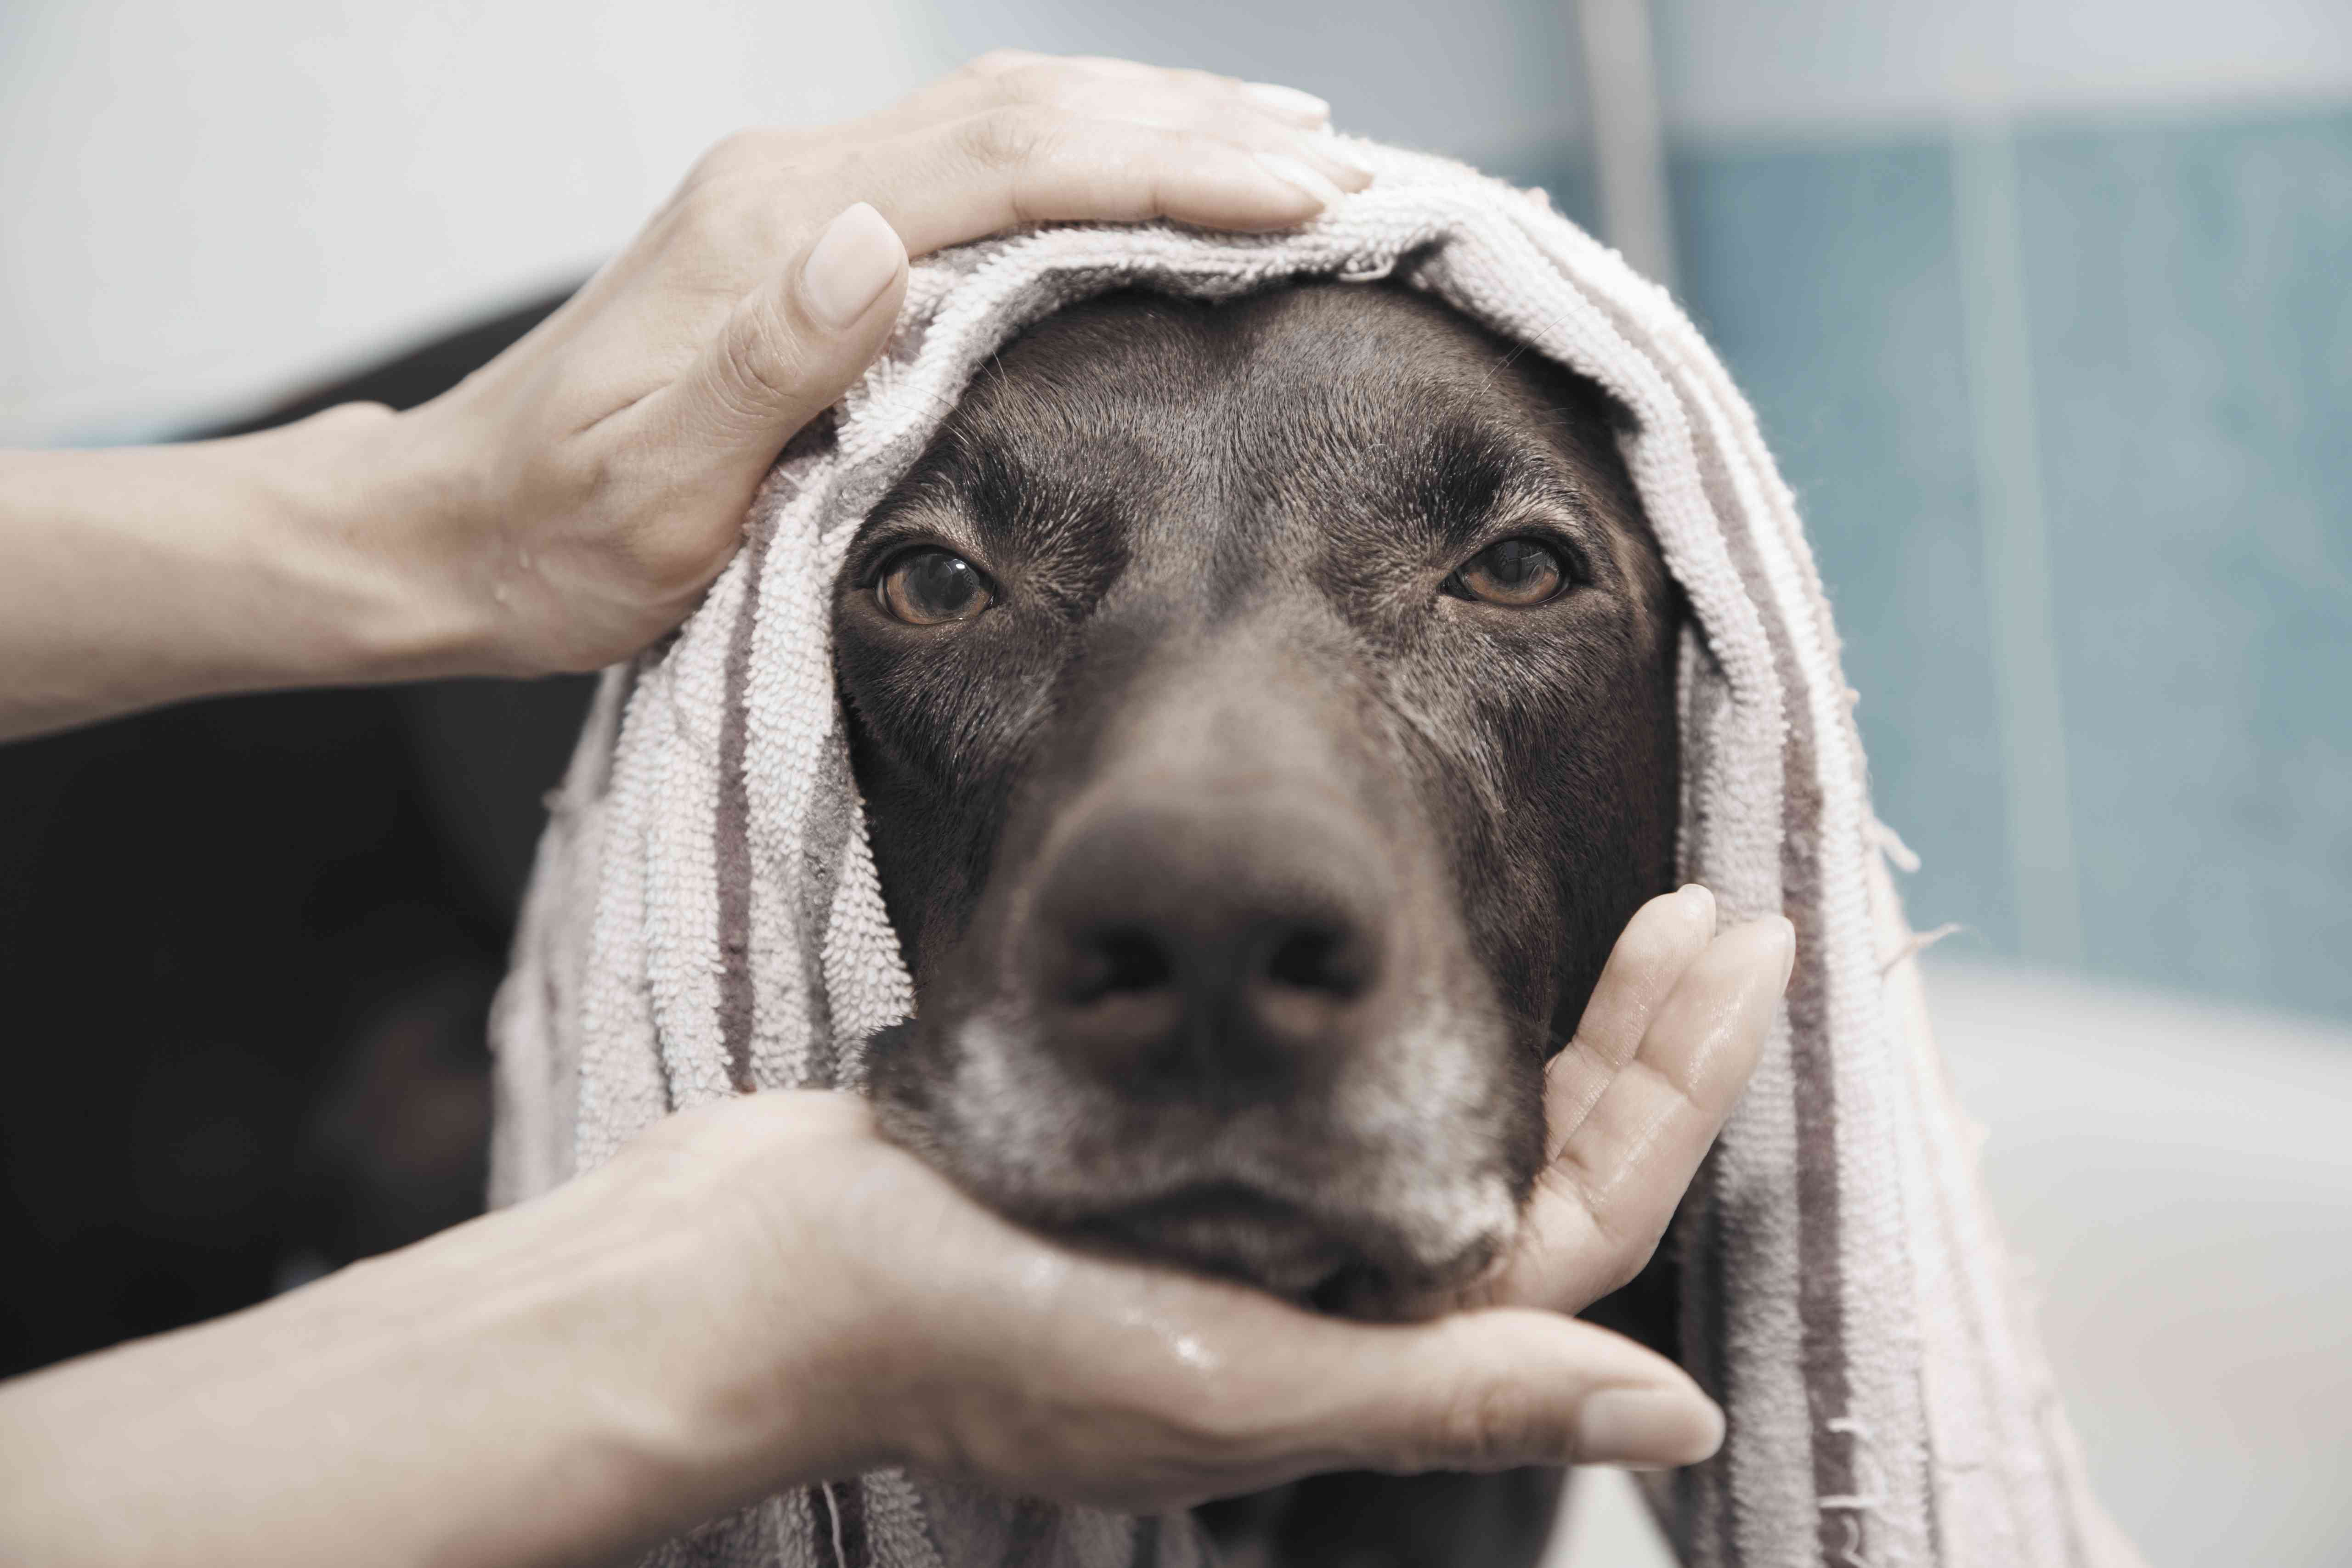 A dog with a towel on its head